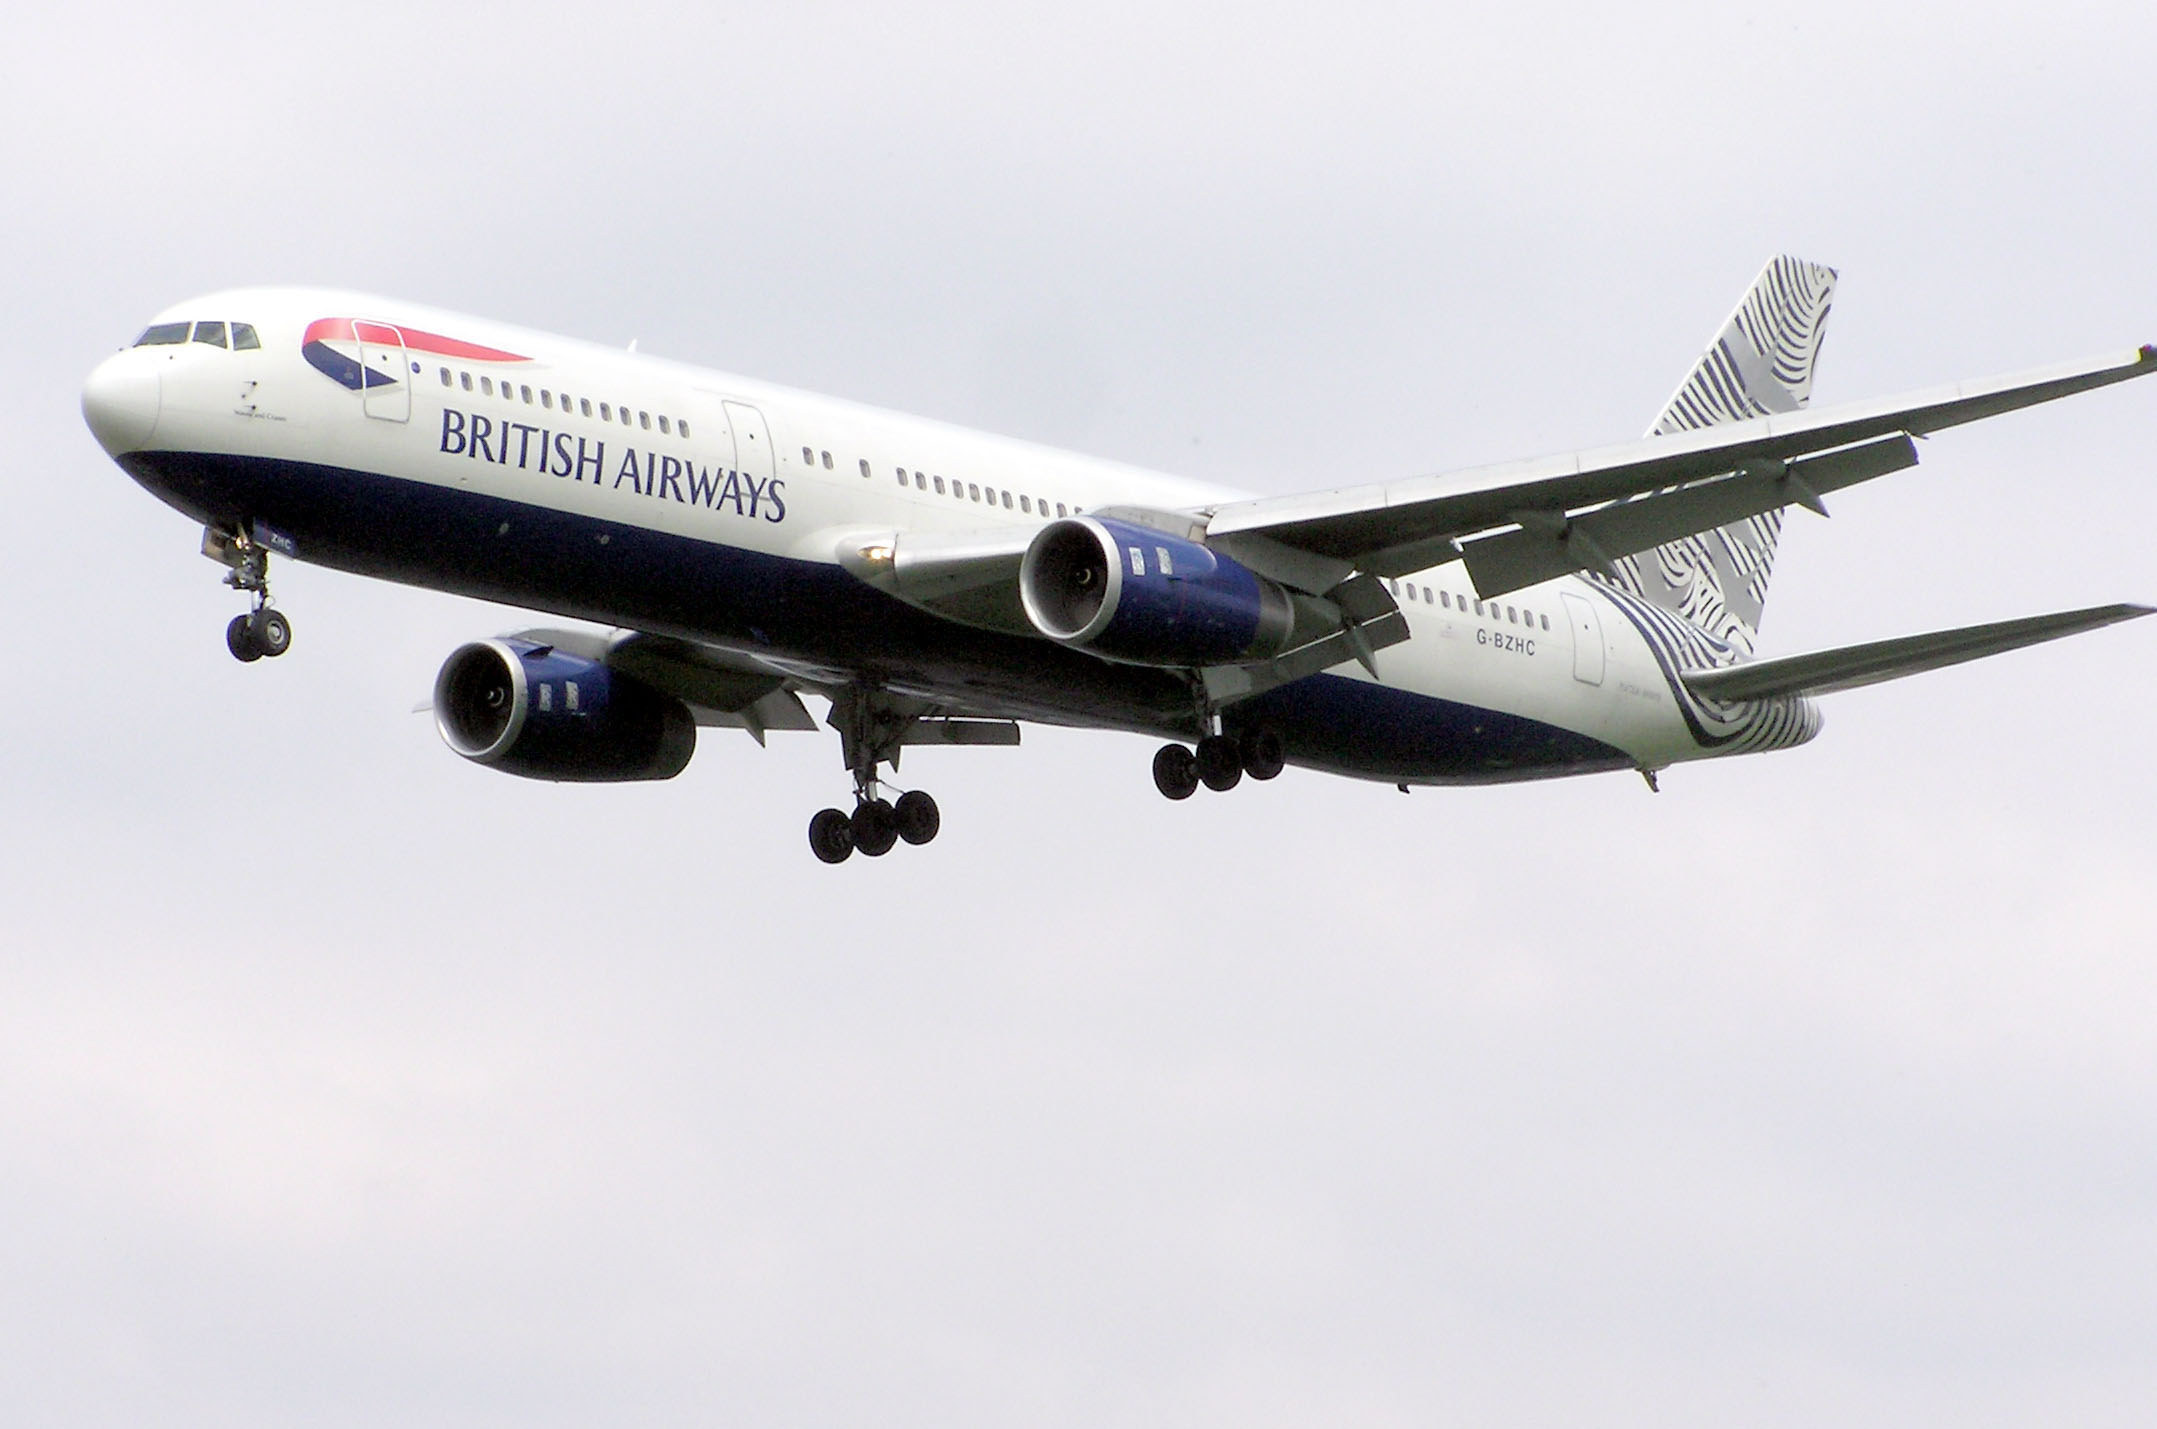 history of british airways Almost a quarter century of stock market history drew to a close on friday, when the british airways name was removed from stock exchange screens.